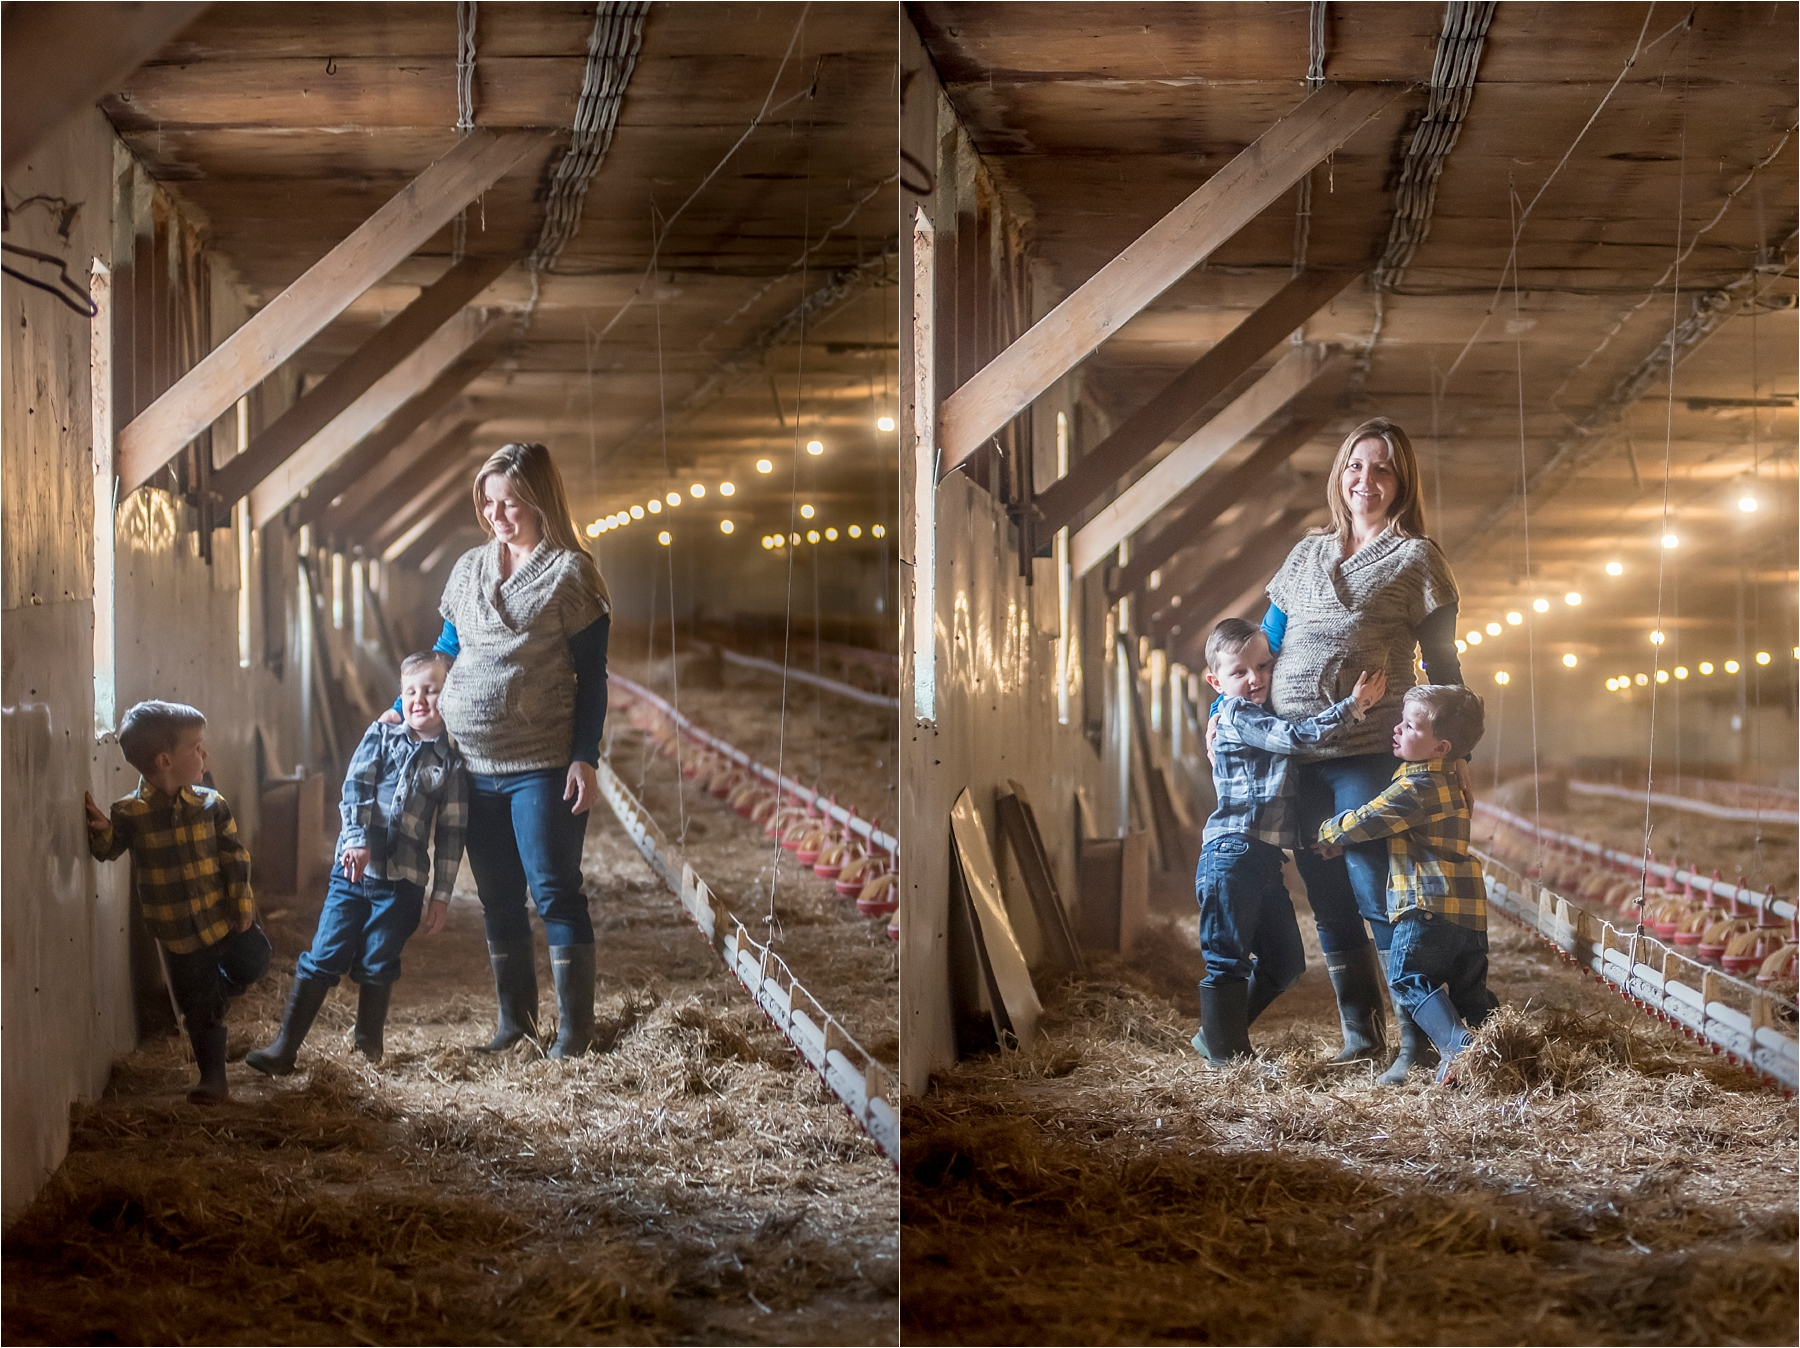 Anthea Michel Photography,Baby Bump,Barrie Family Photographer,Barrie Maternity Photographer,Bump,Collingwood Family Photographer,Collingwood Maternity Photographer,Country Photograohy,Family,Family Photographer,Family Photography,Farm,Maternity,New Lowell Family Photographer,New Lowell Maternity Photographer,New owell,On the Farm,Ontario,Stayner,Styaner Photographer,